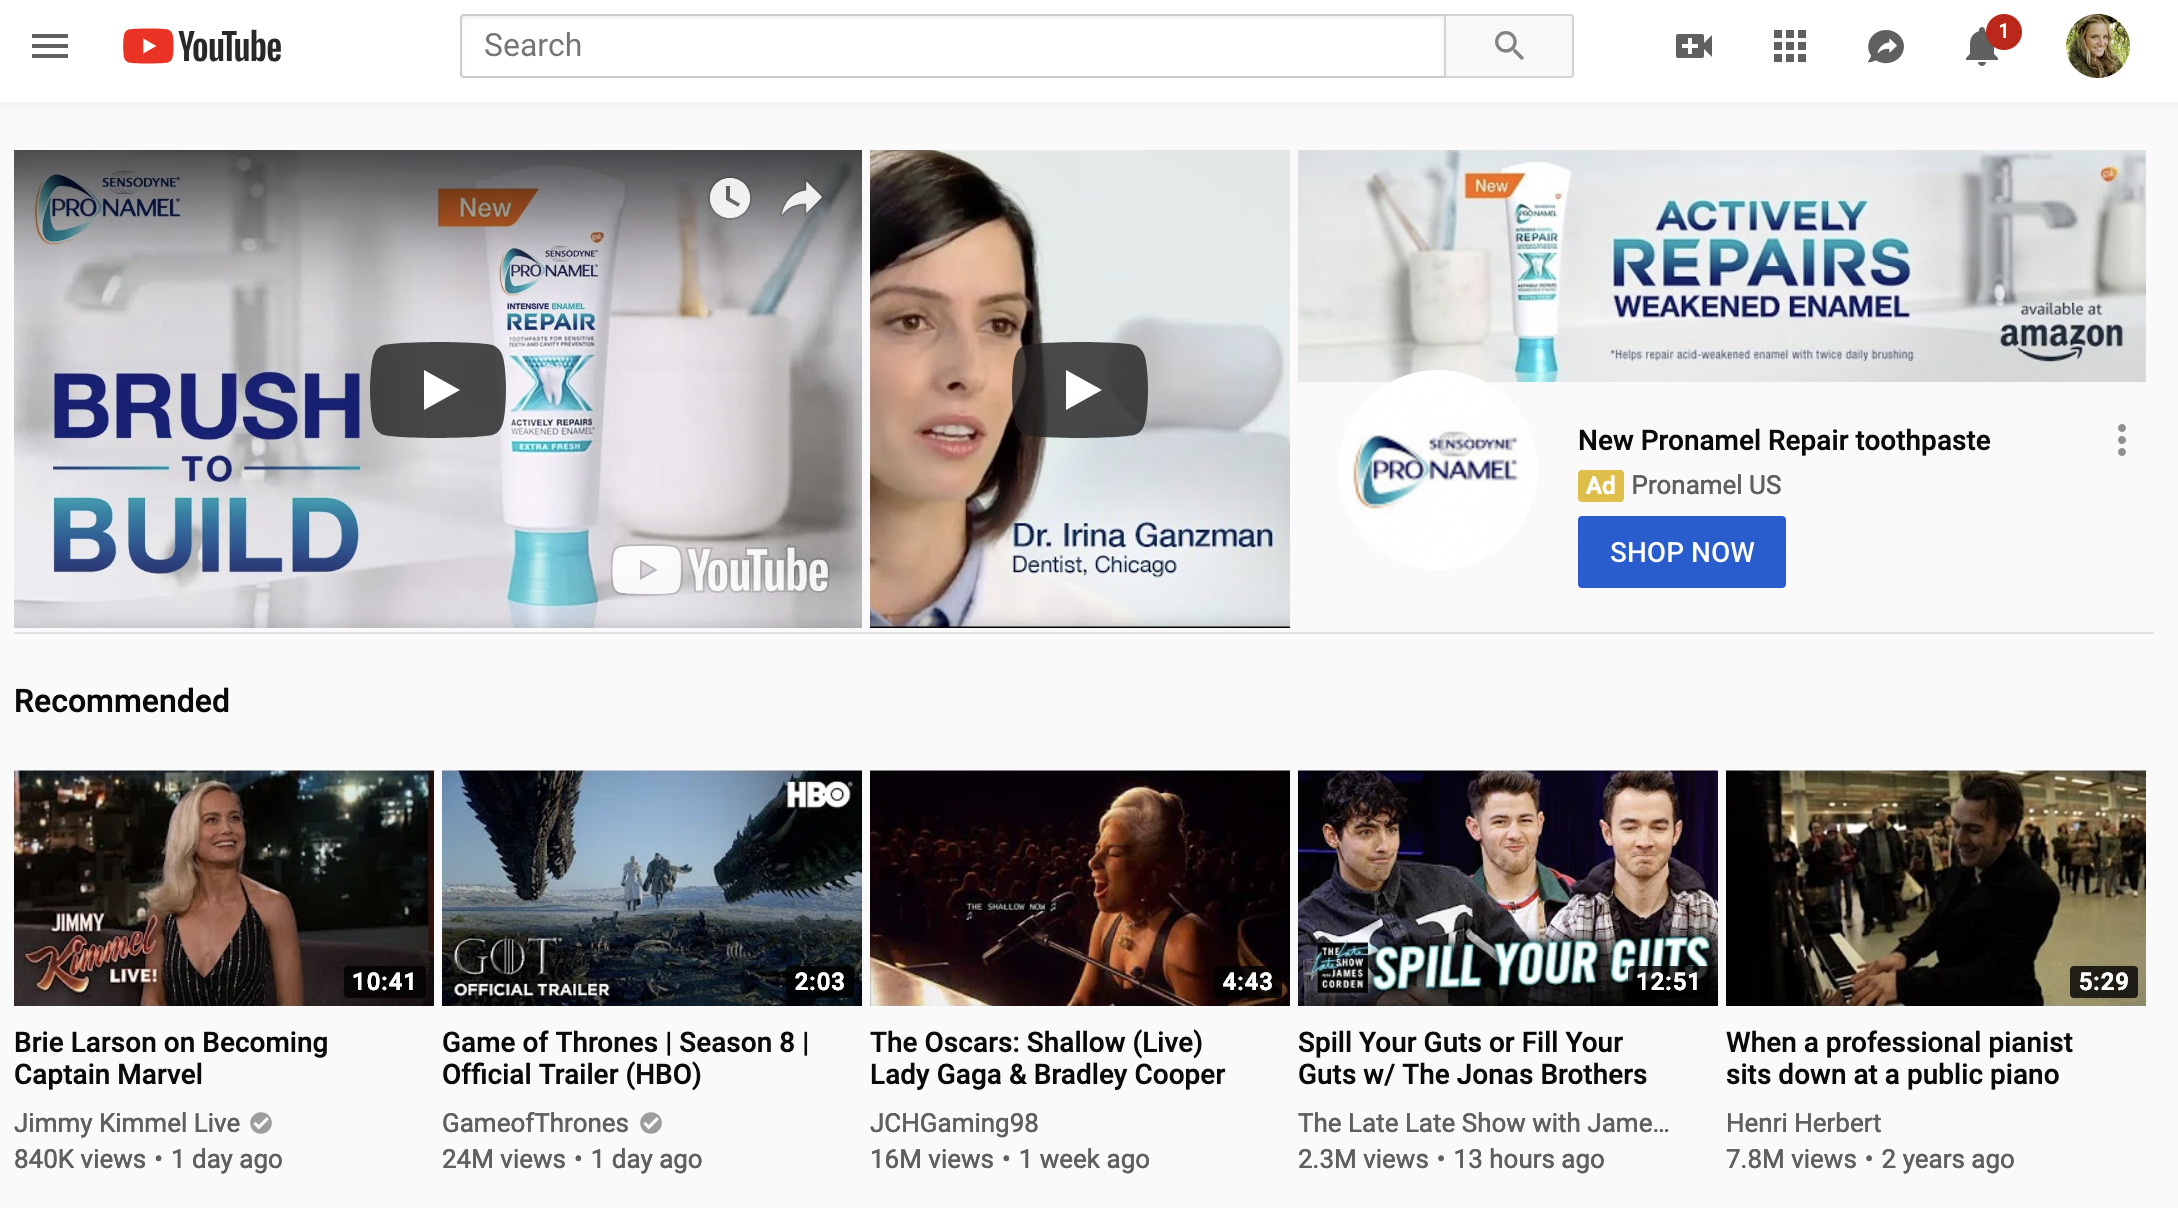 YouTube search ad